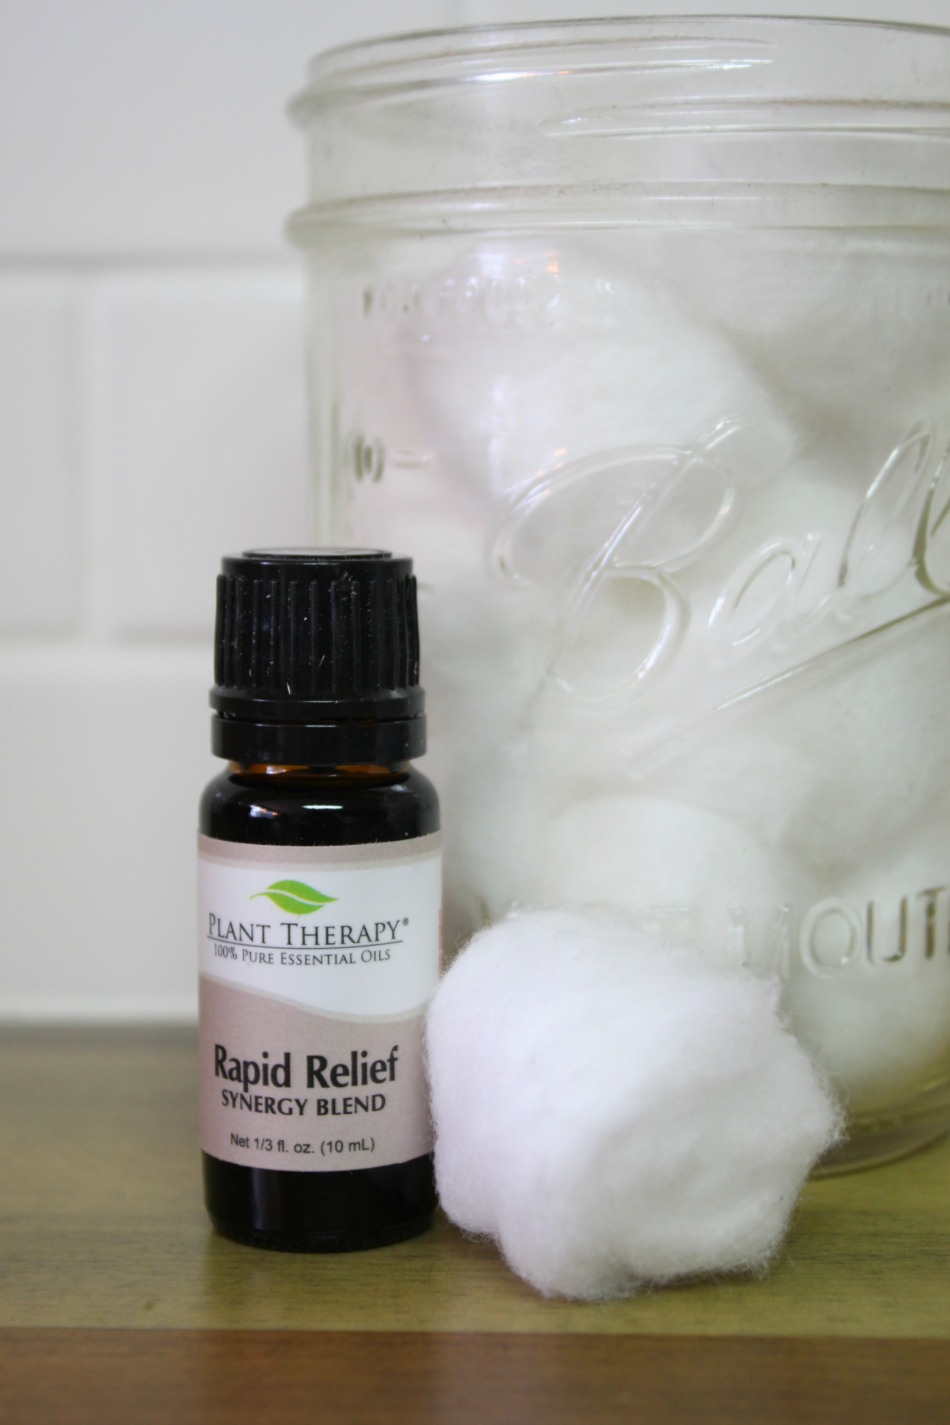 Are You Diffusing Essential Oils Safely? | Growing Up Herbal | Diffusing essential oils is one of the most effective ways to use essential oils, but are you doing it safely? Learn more in this post!